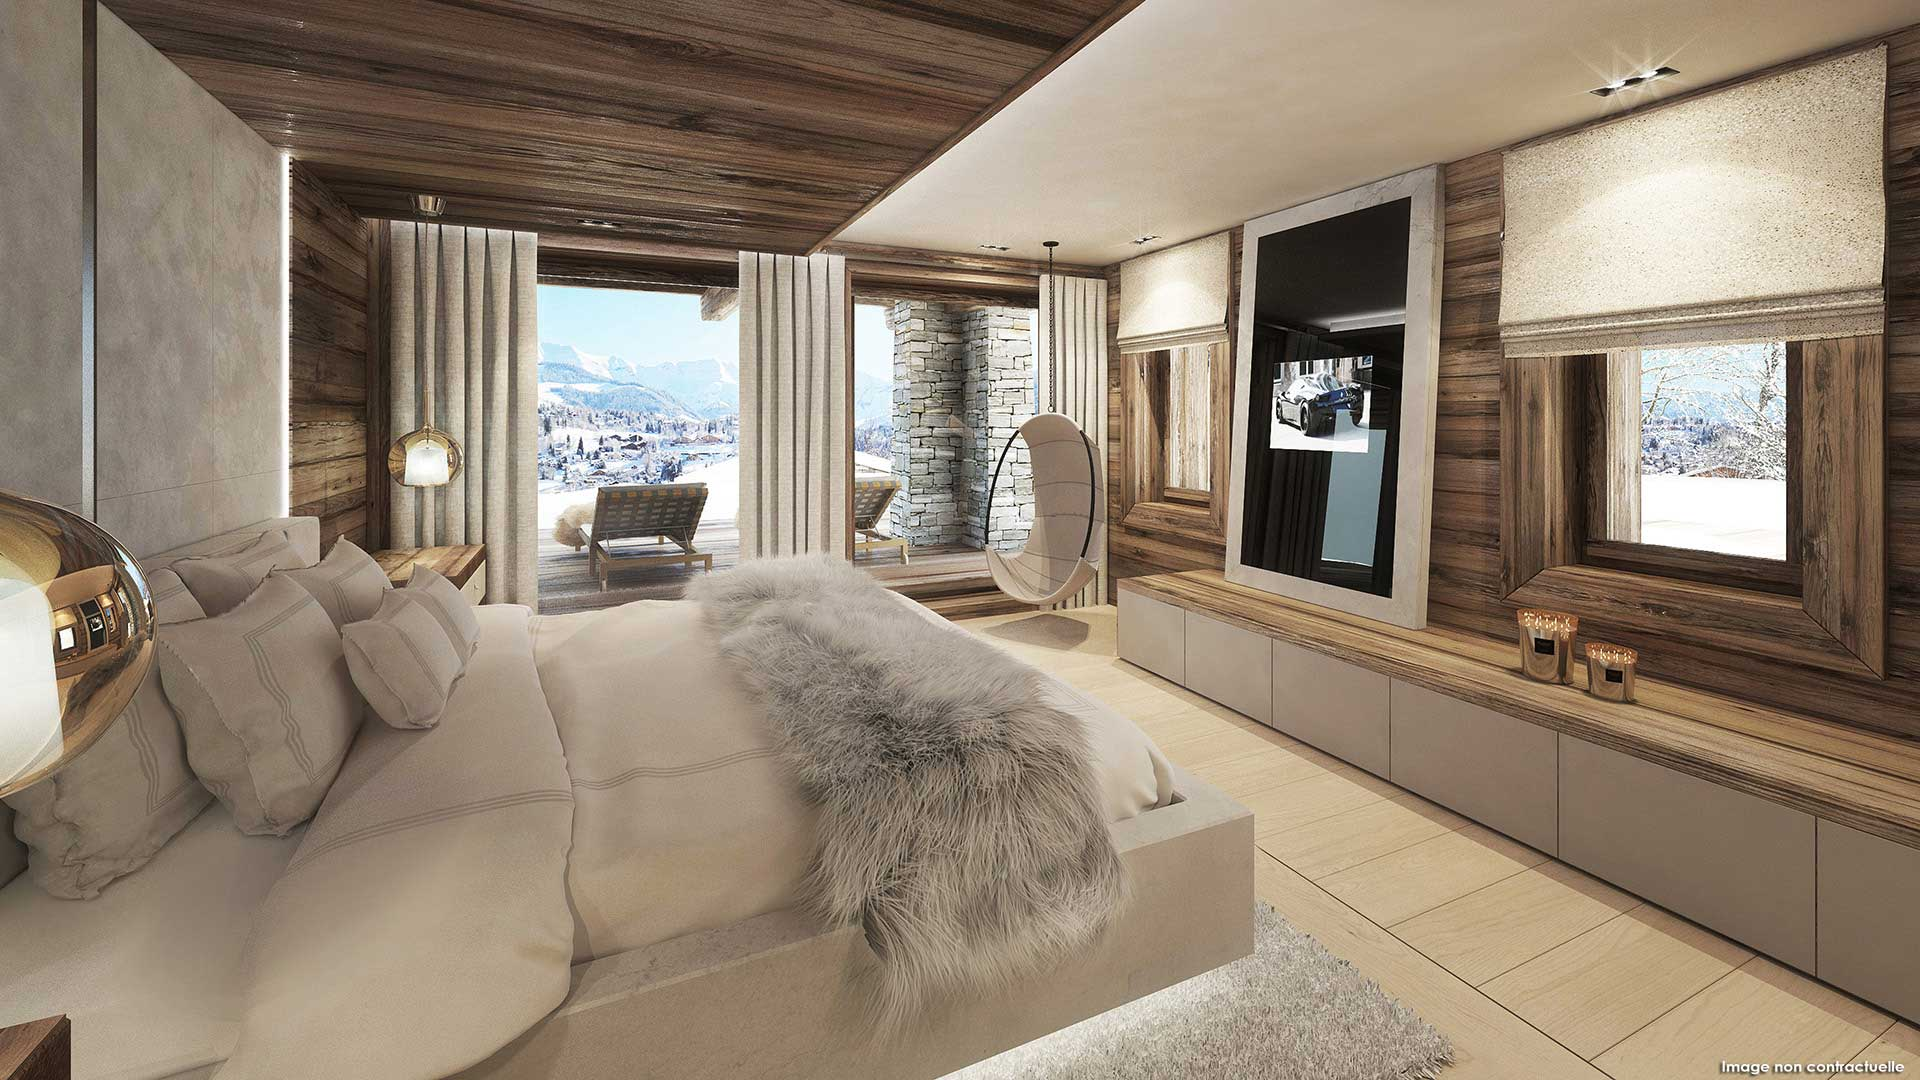 Creation of a 3D perspective of the room of a luxurious chalet.